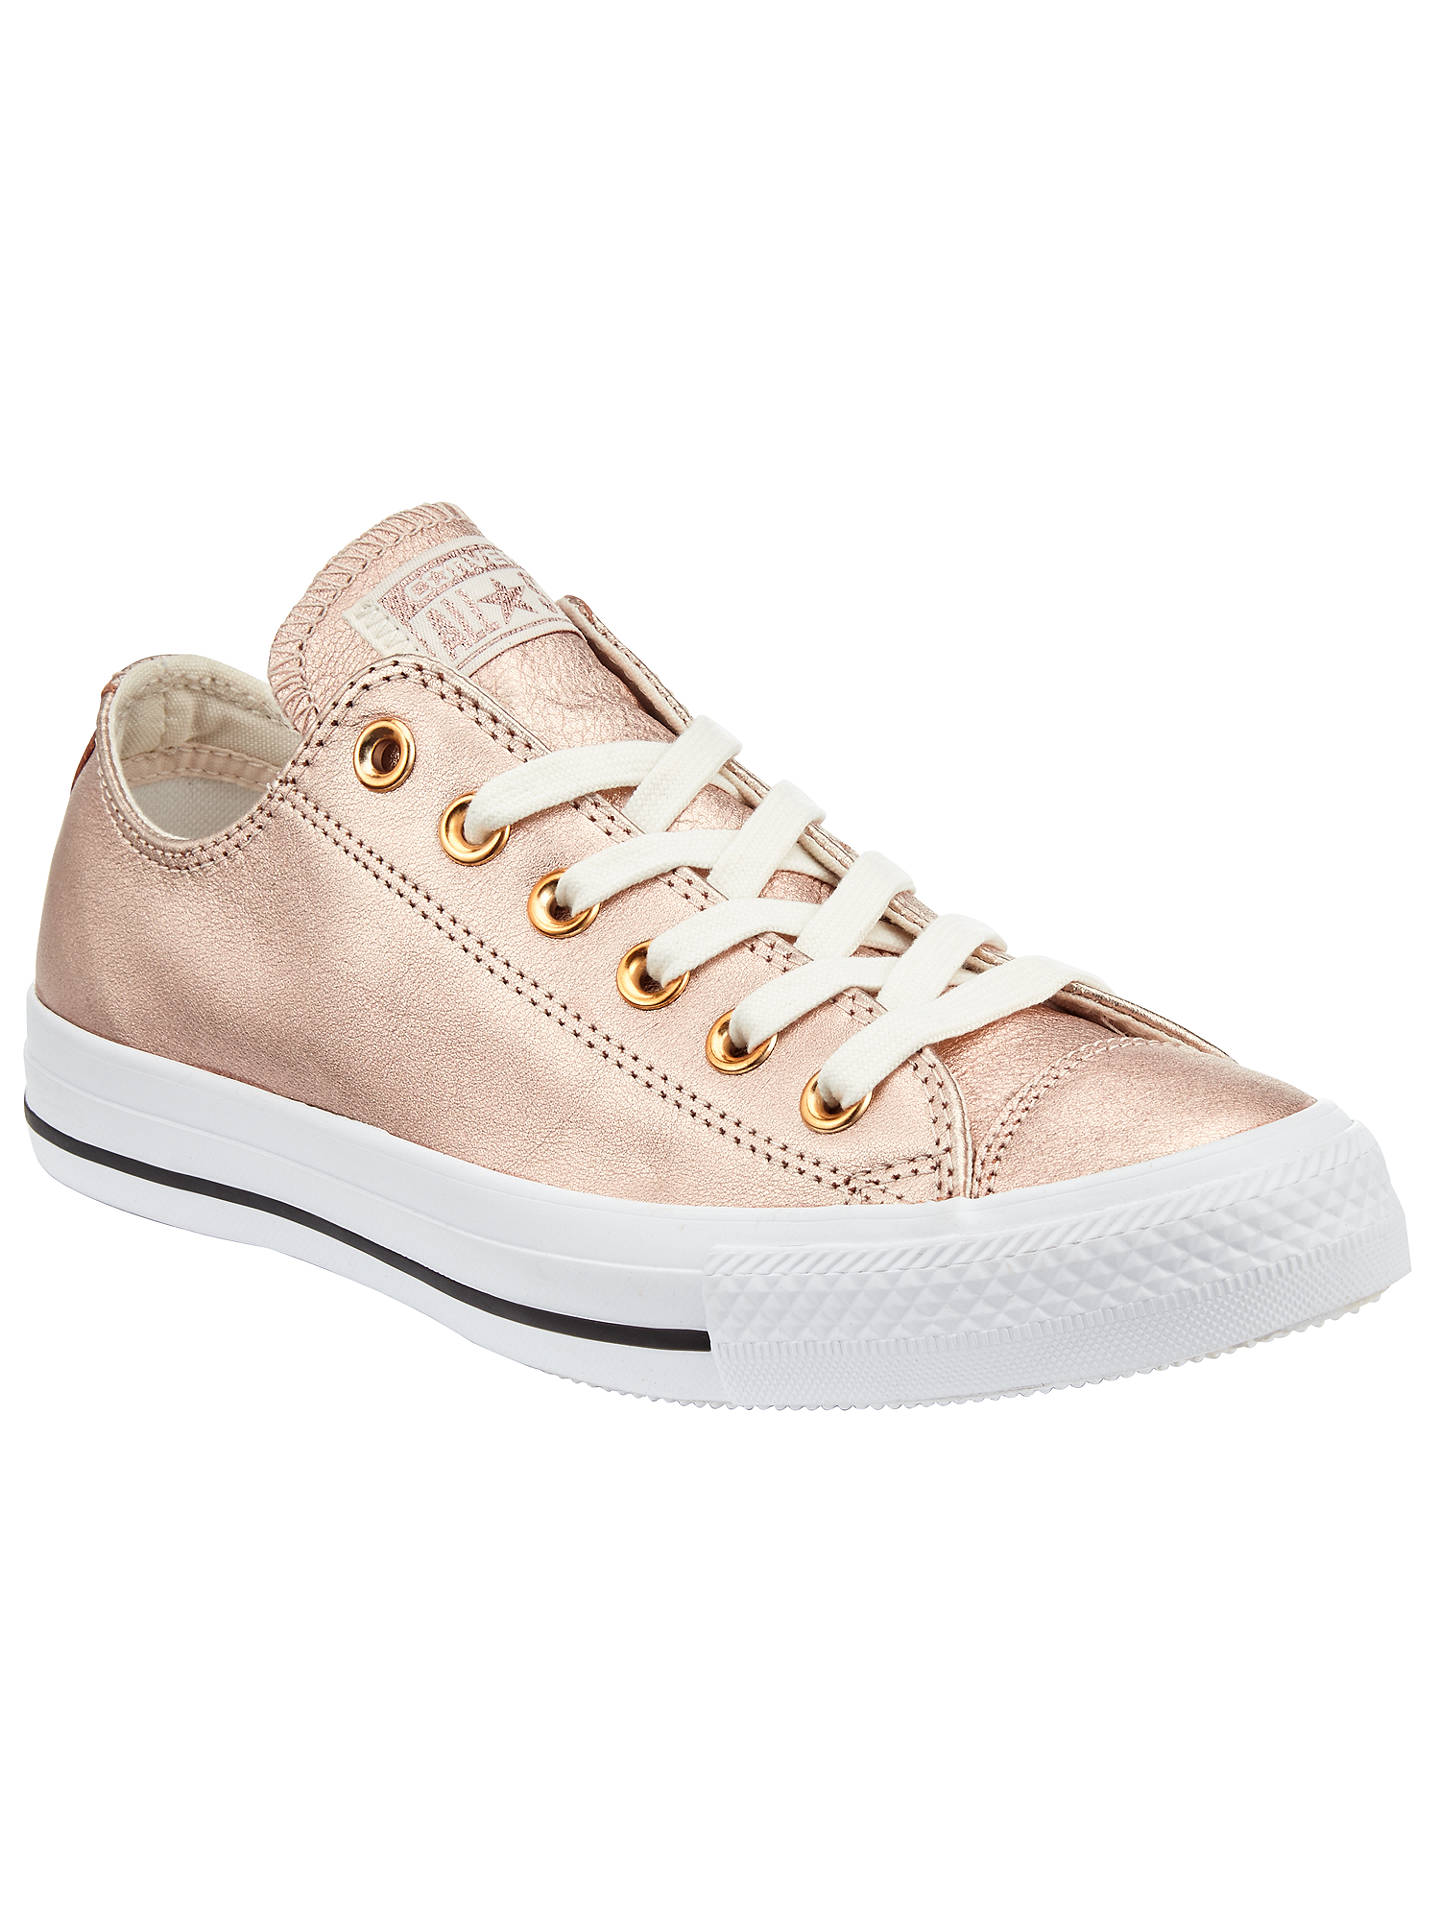 97346cc23830 Buy Converse Chuck Taylor All Star Ox Metallic Canvas Trainers